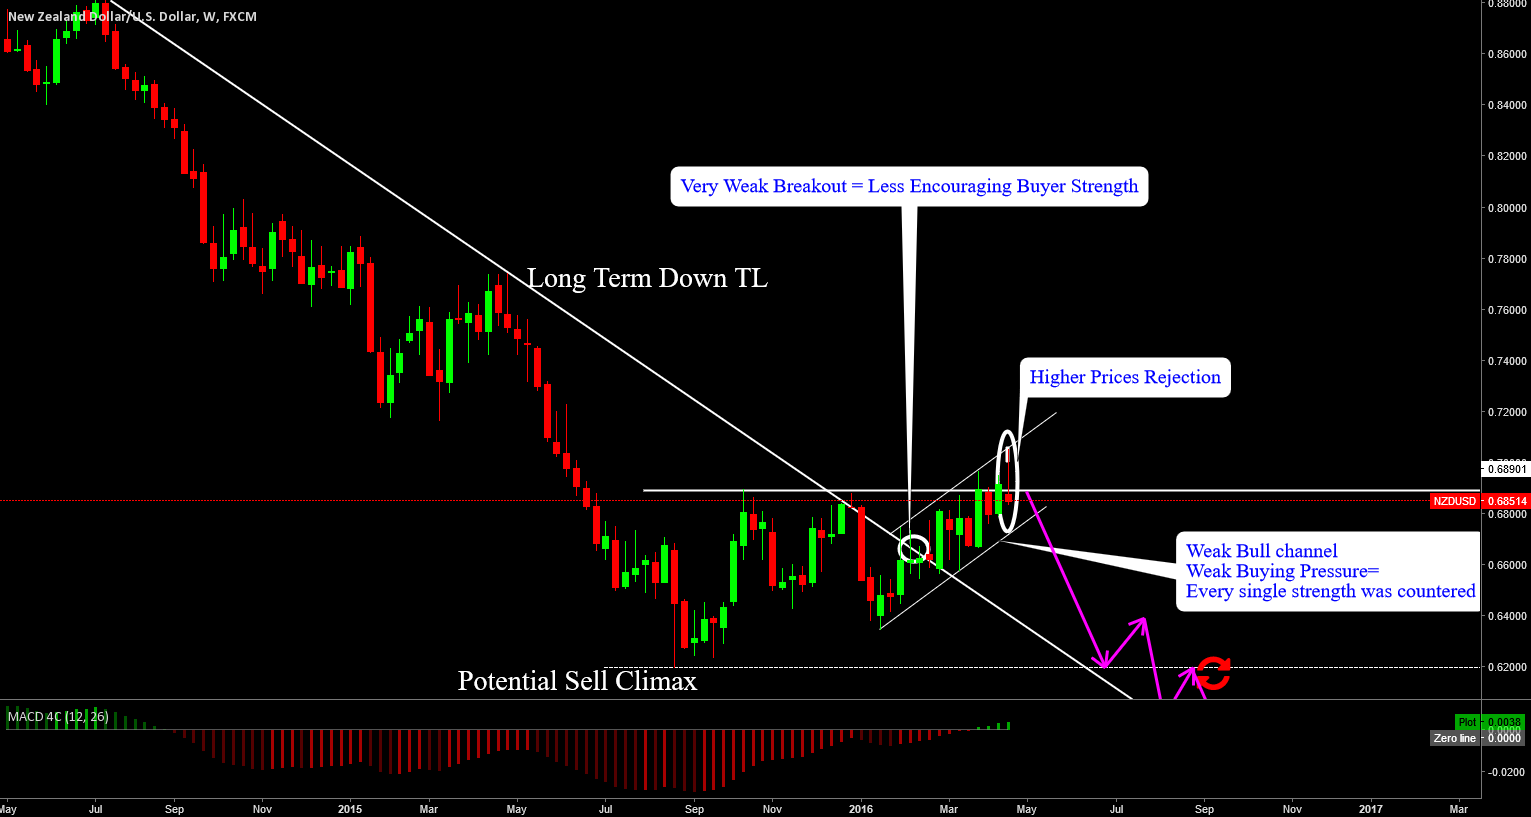 NZDUSD: PRICE WANTS TO MAKE A TURN BUT LACKS BUYING PRESSURE